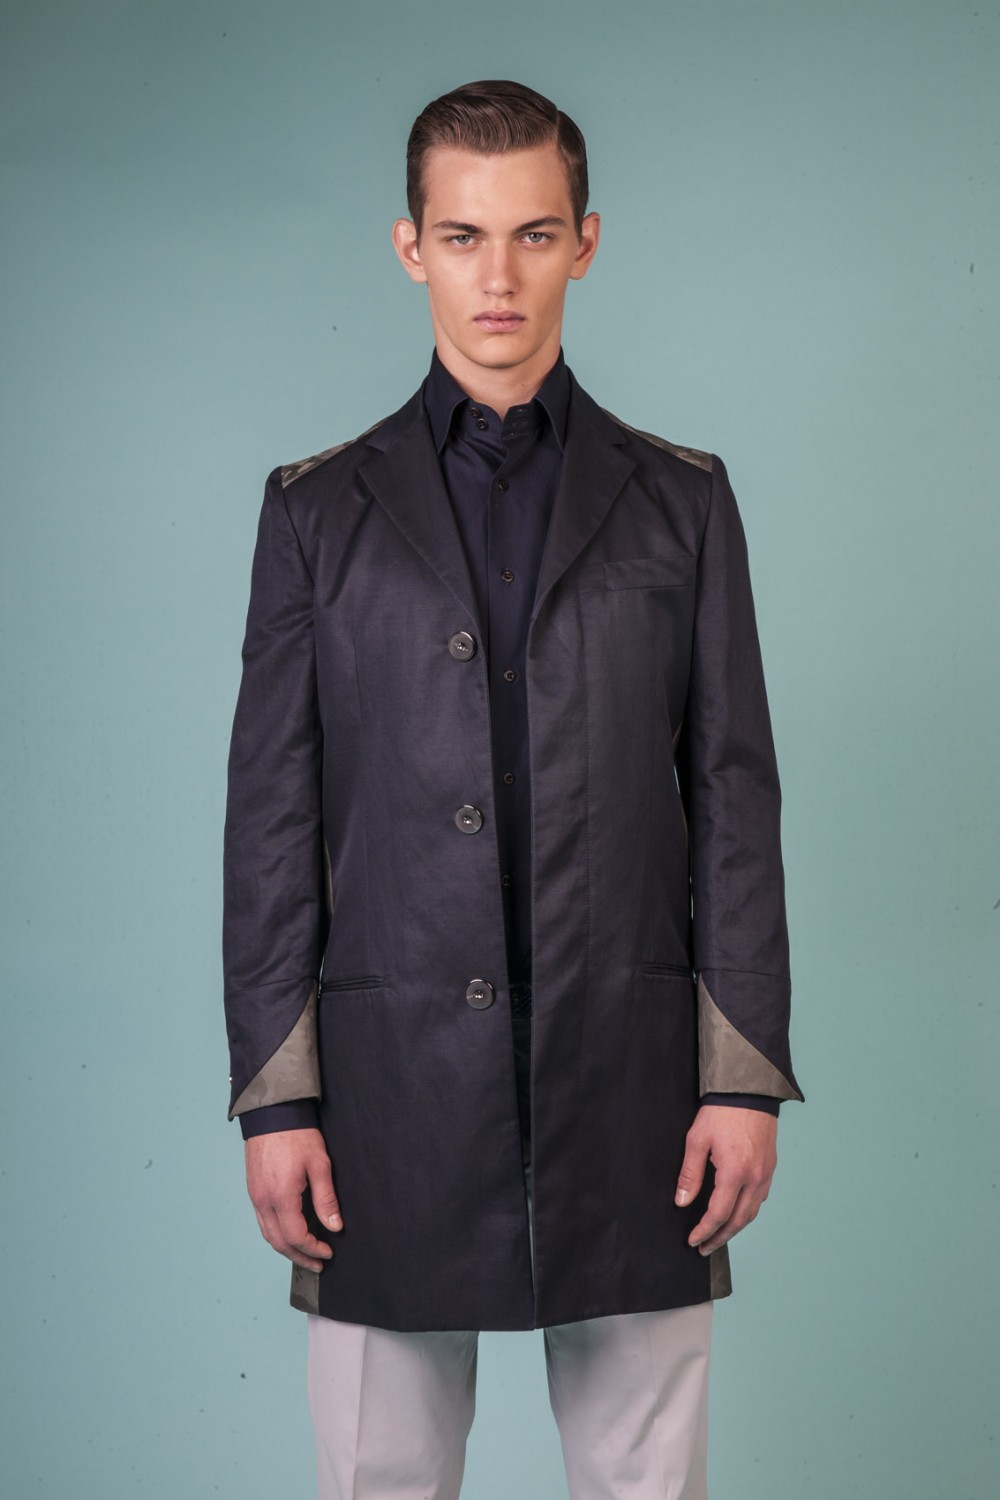 Colour: Navy - Military green camouflage Fabric: Technical linen - Technical jacquard Lining: Viscose